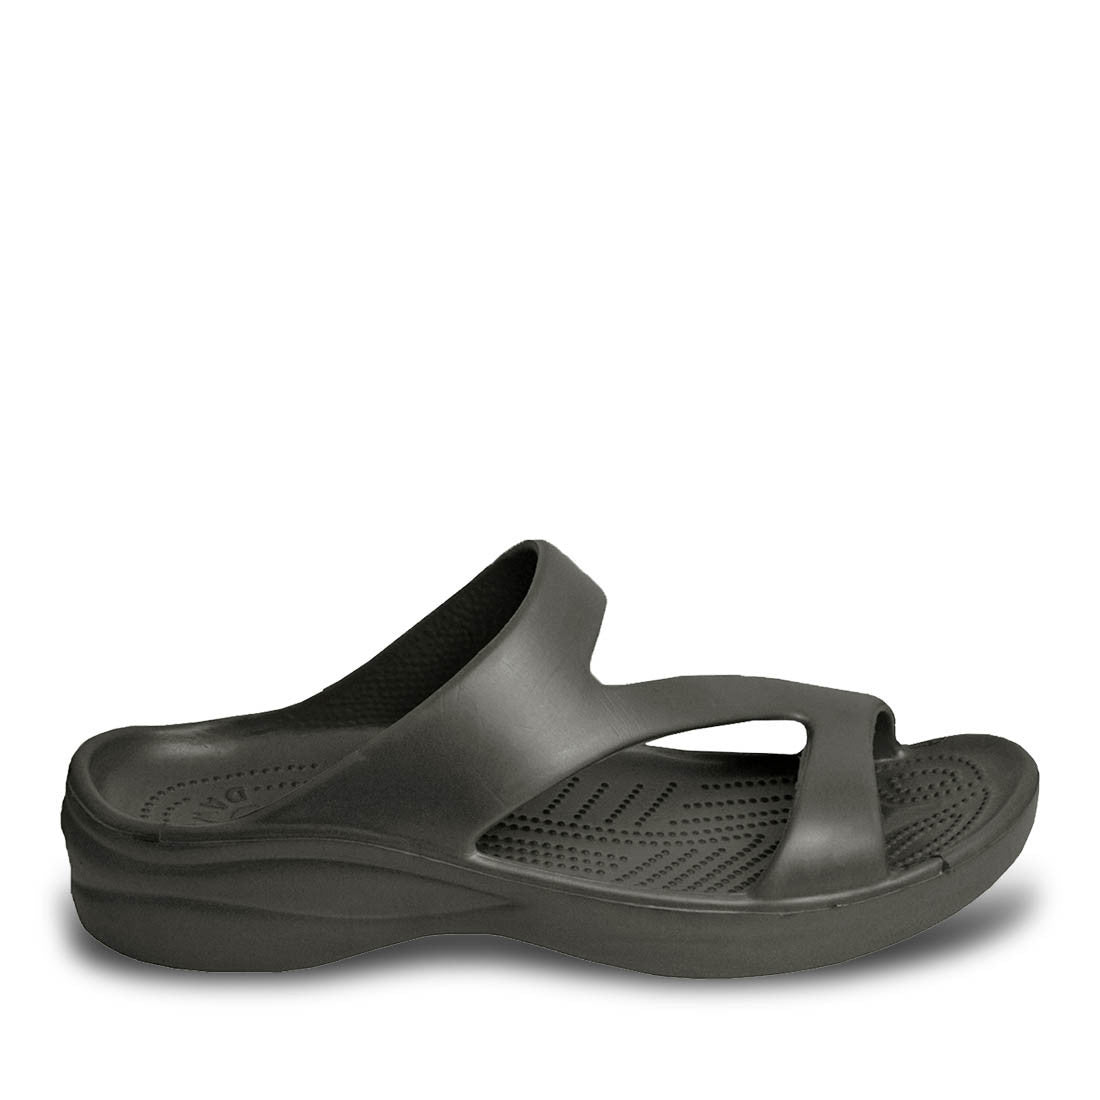 Image of Women's Z Sandals - Black